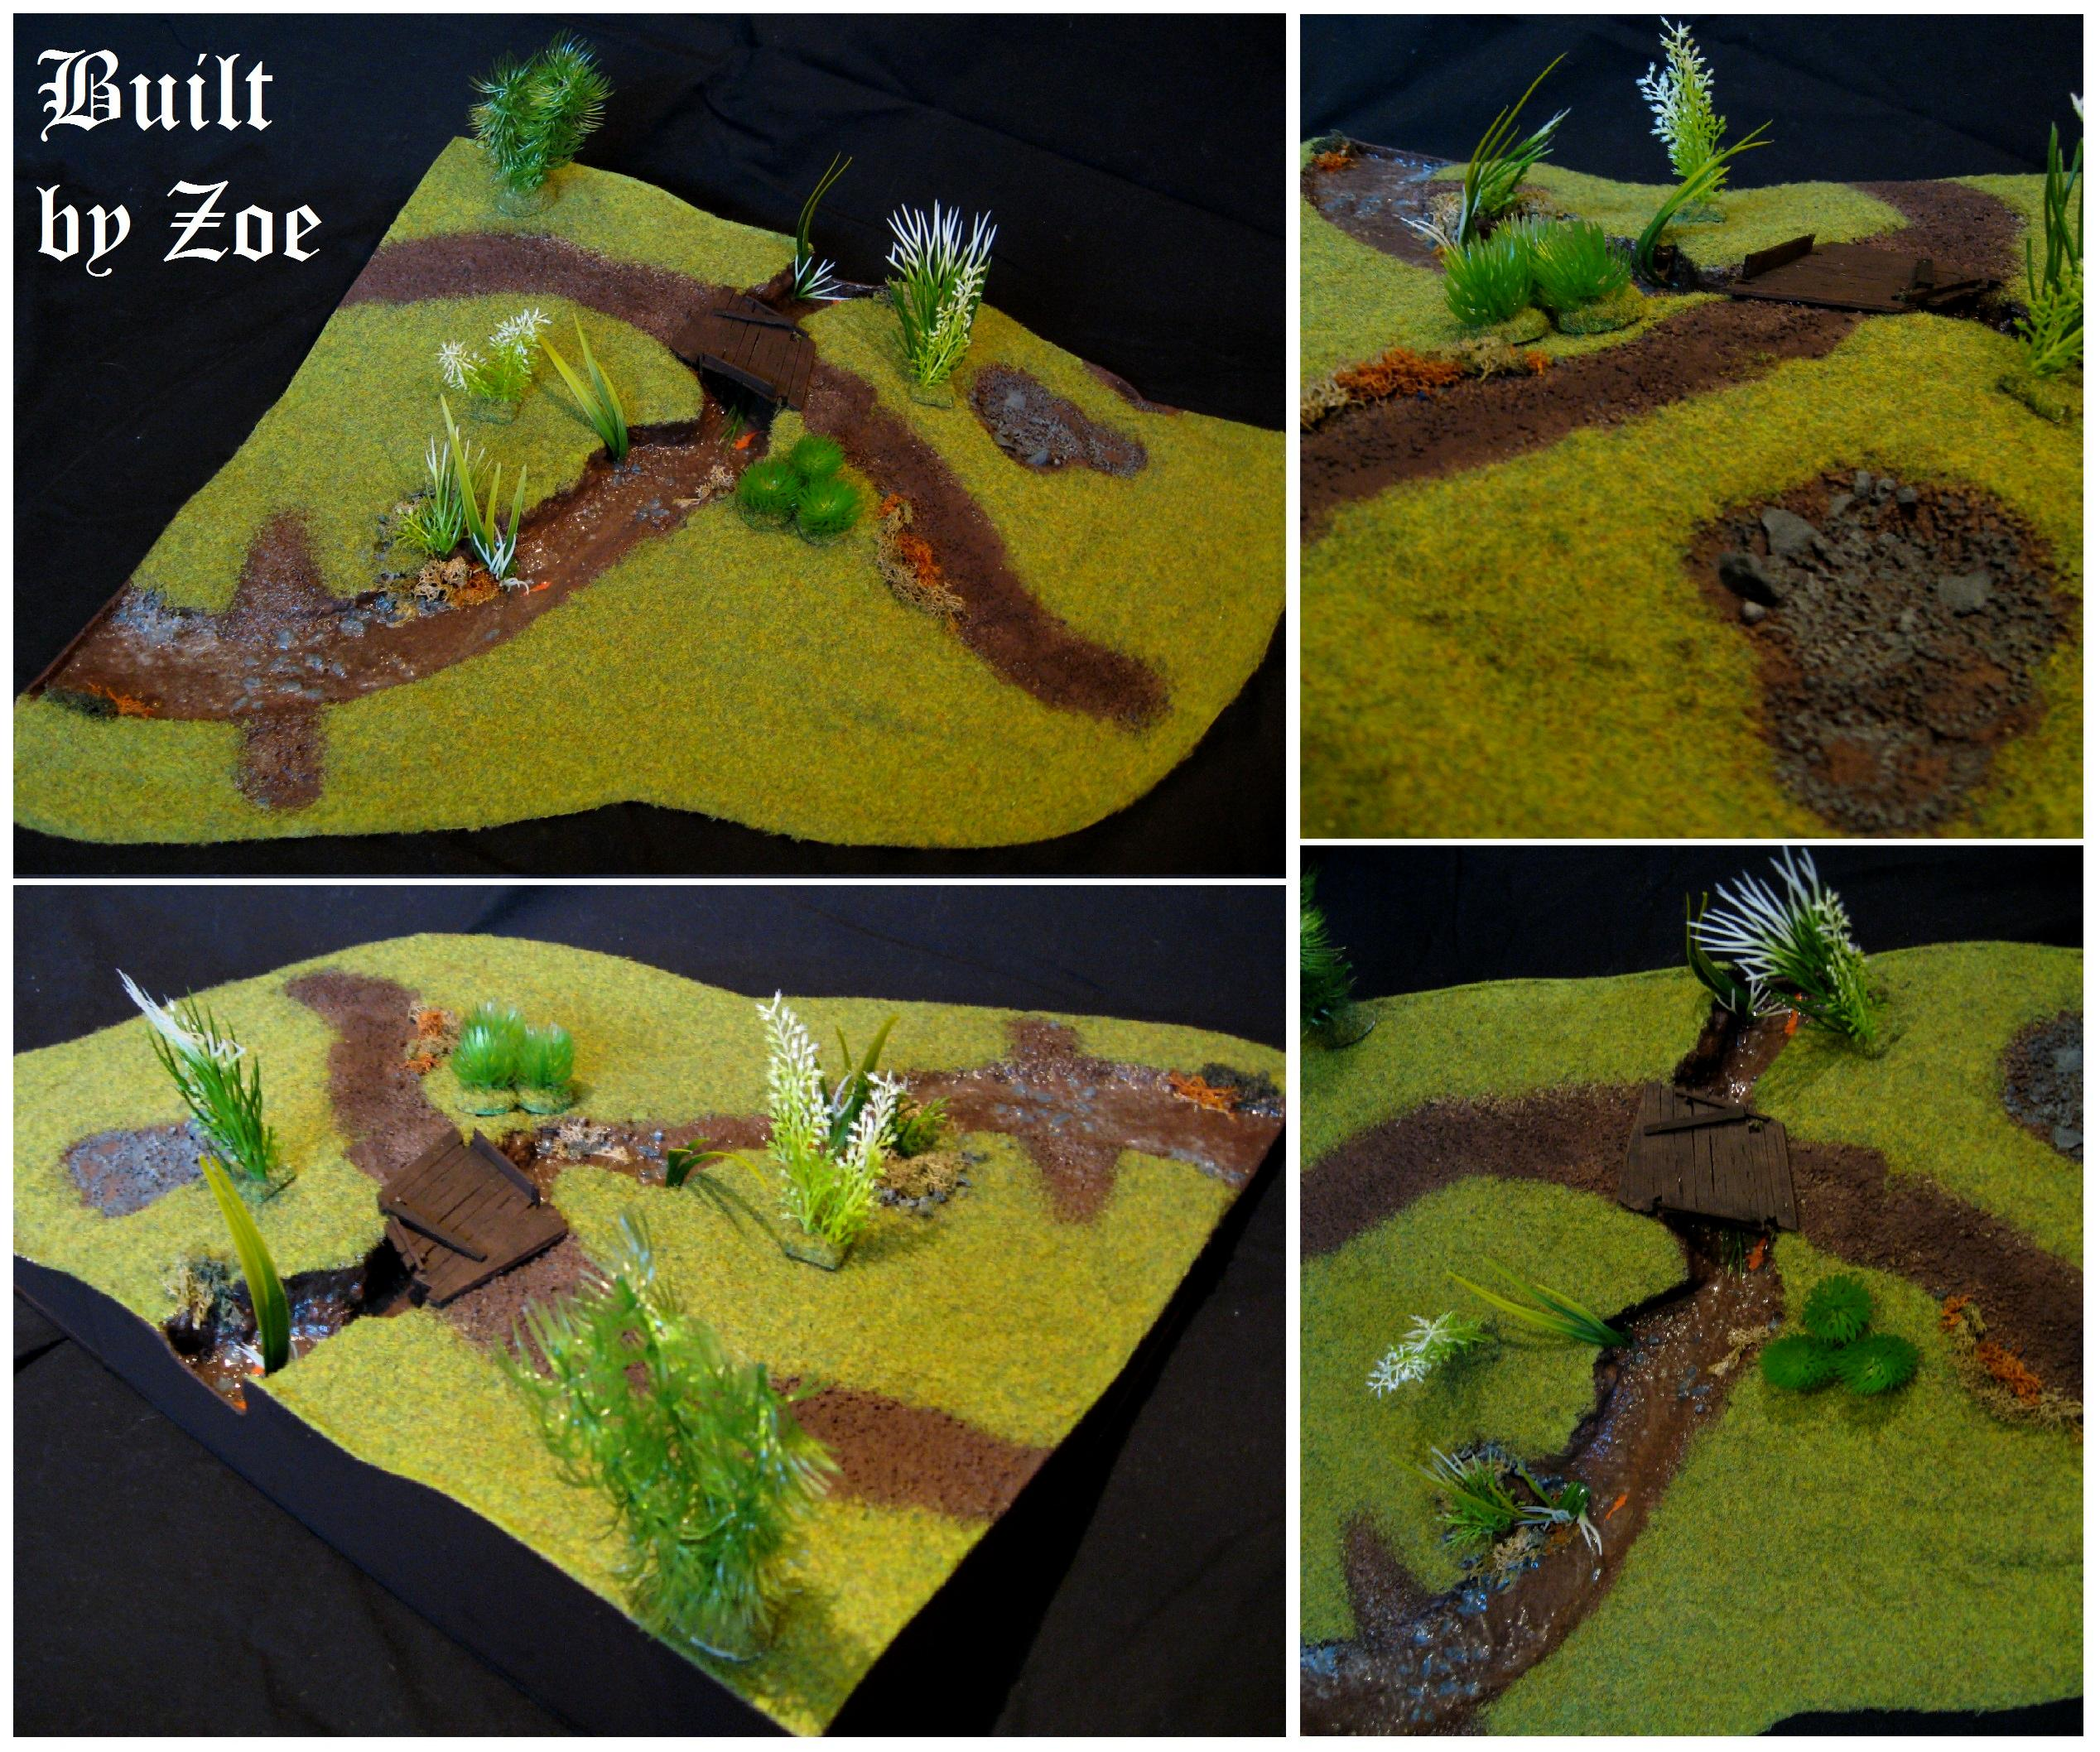 Hills, Scratch Build, Terrain, Water